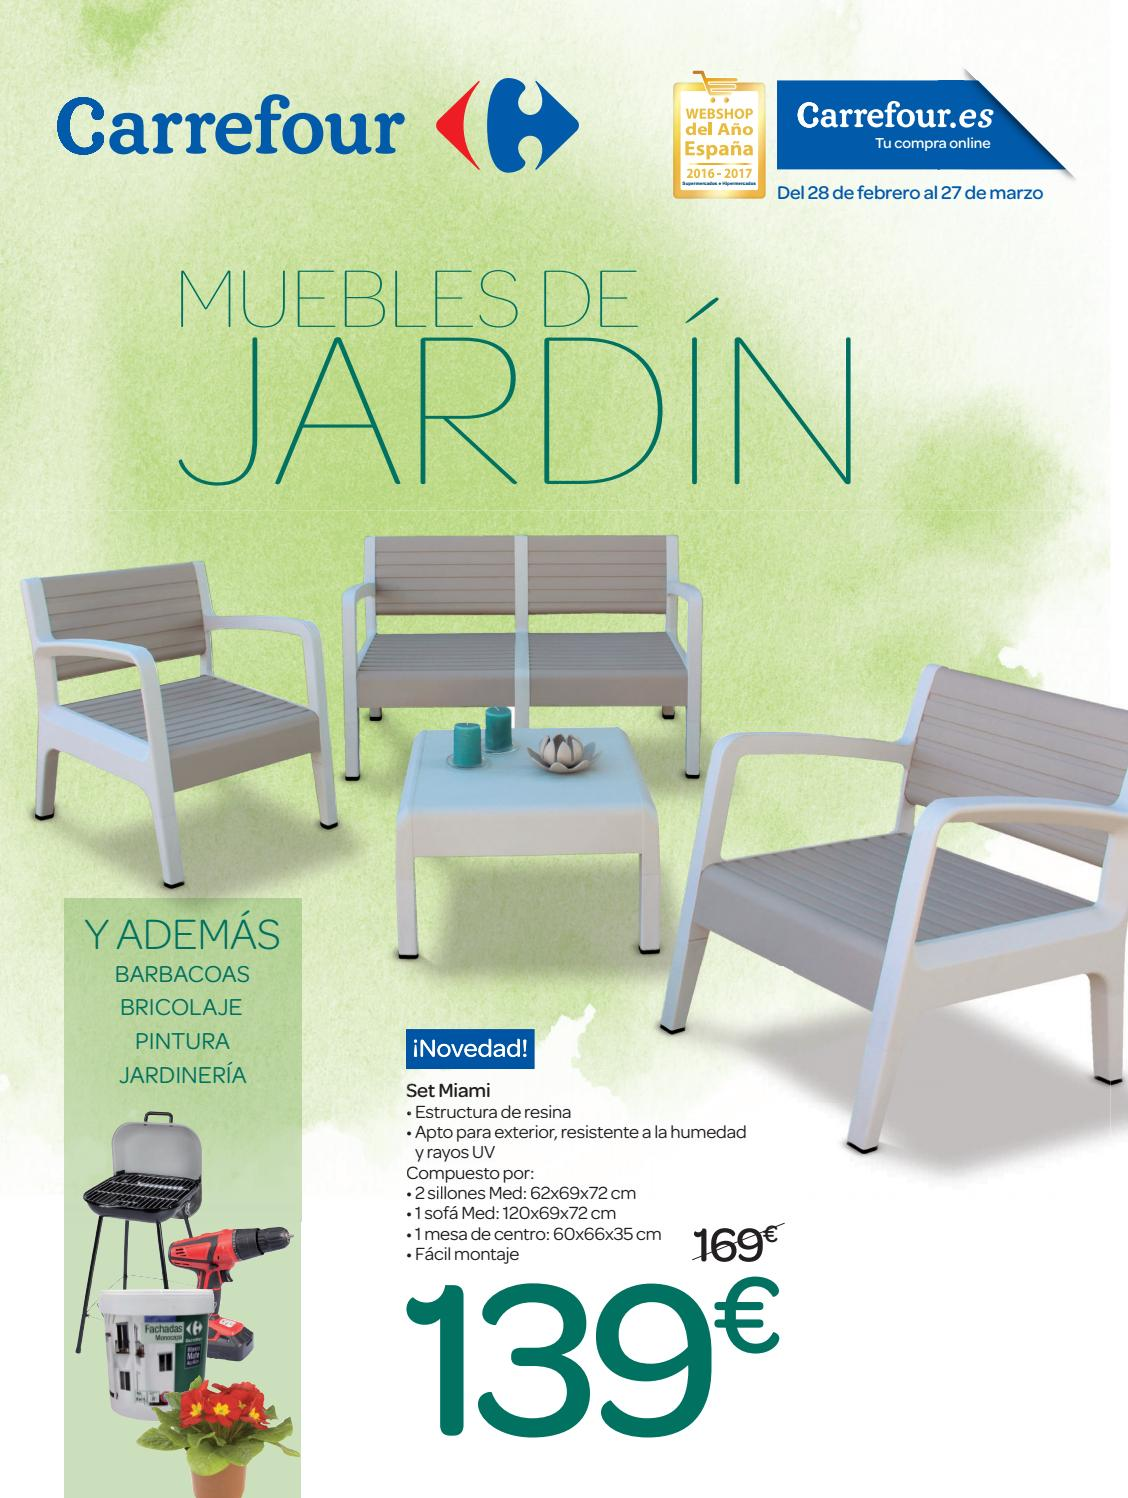 Muebles de jardin carrefour by ofertas supermercados issuu for Carrefour jardin